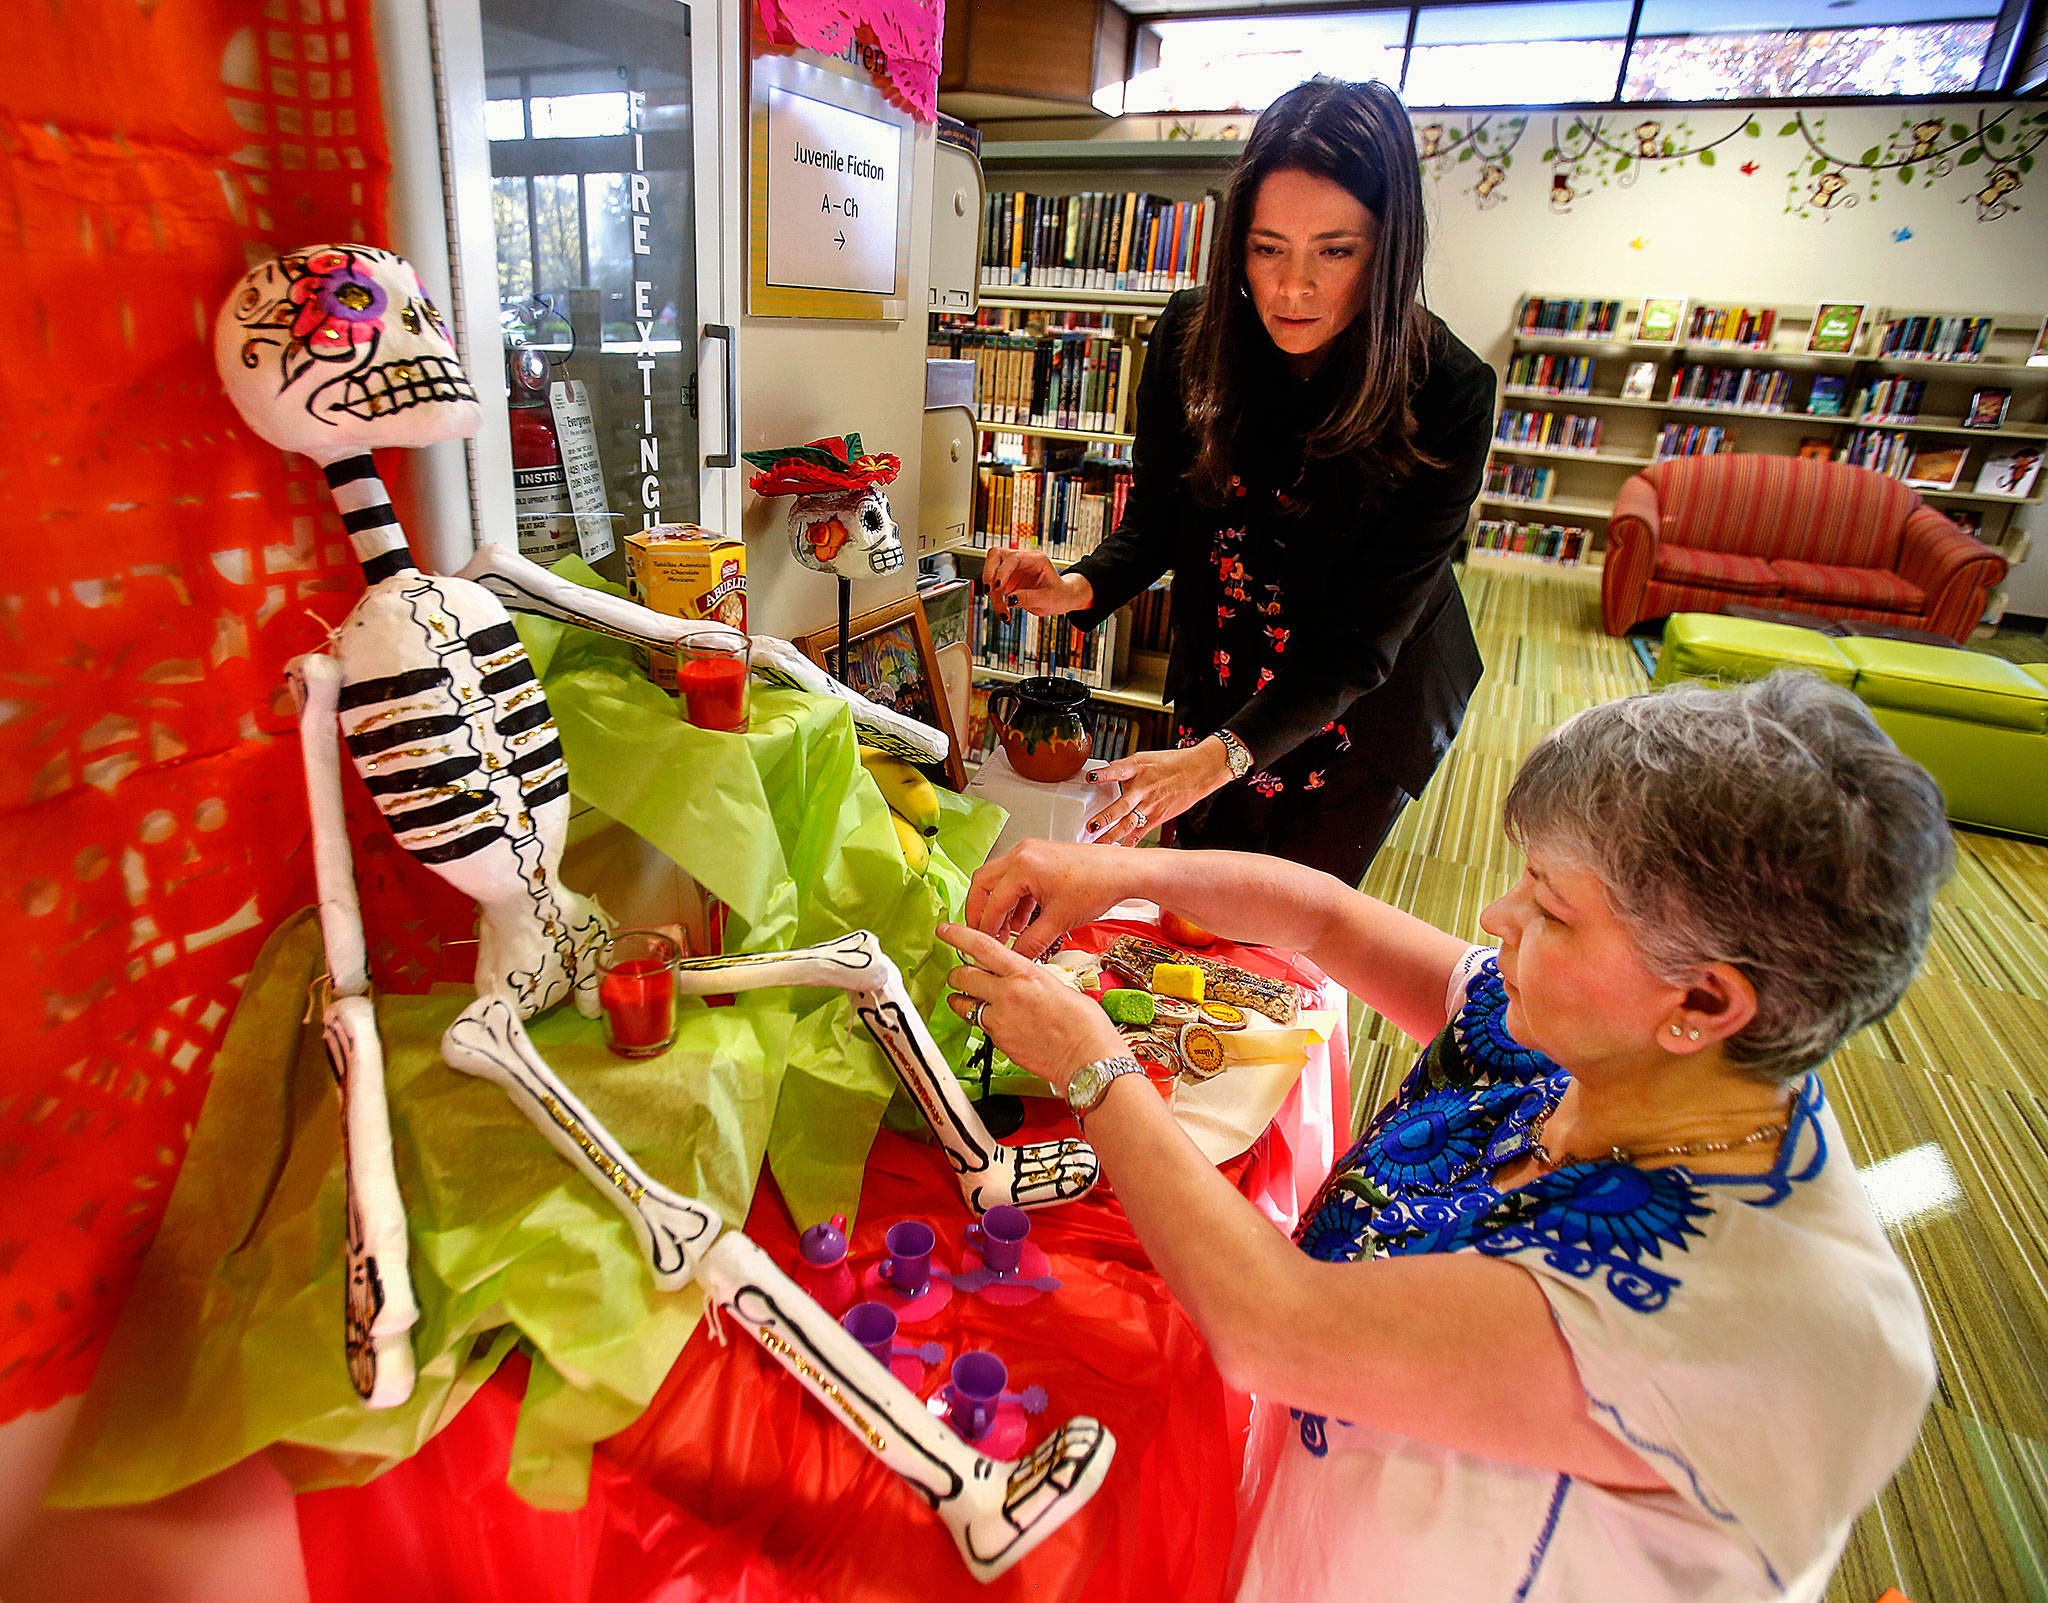 At Lynnwood Library, Julieta Altamirano-Crosby (left) and Maria Casey create a Day of the Dead display in the children's area Tuesday. The women created a larger adult version as well. (Dan Bates / The Herald)